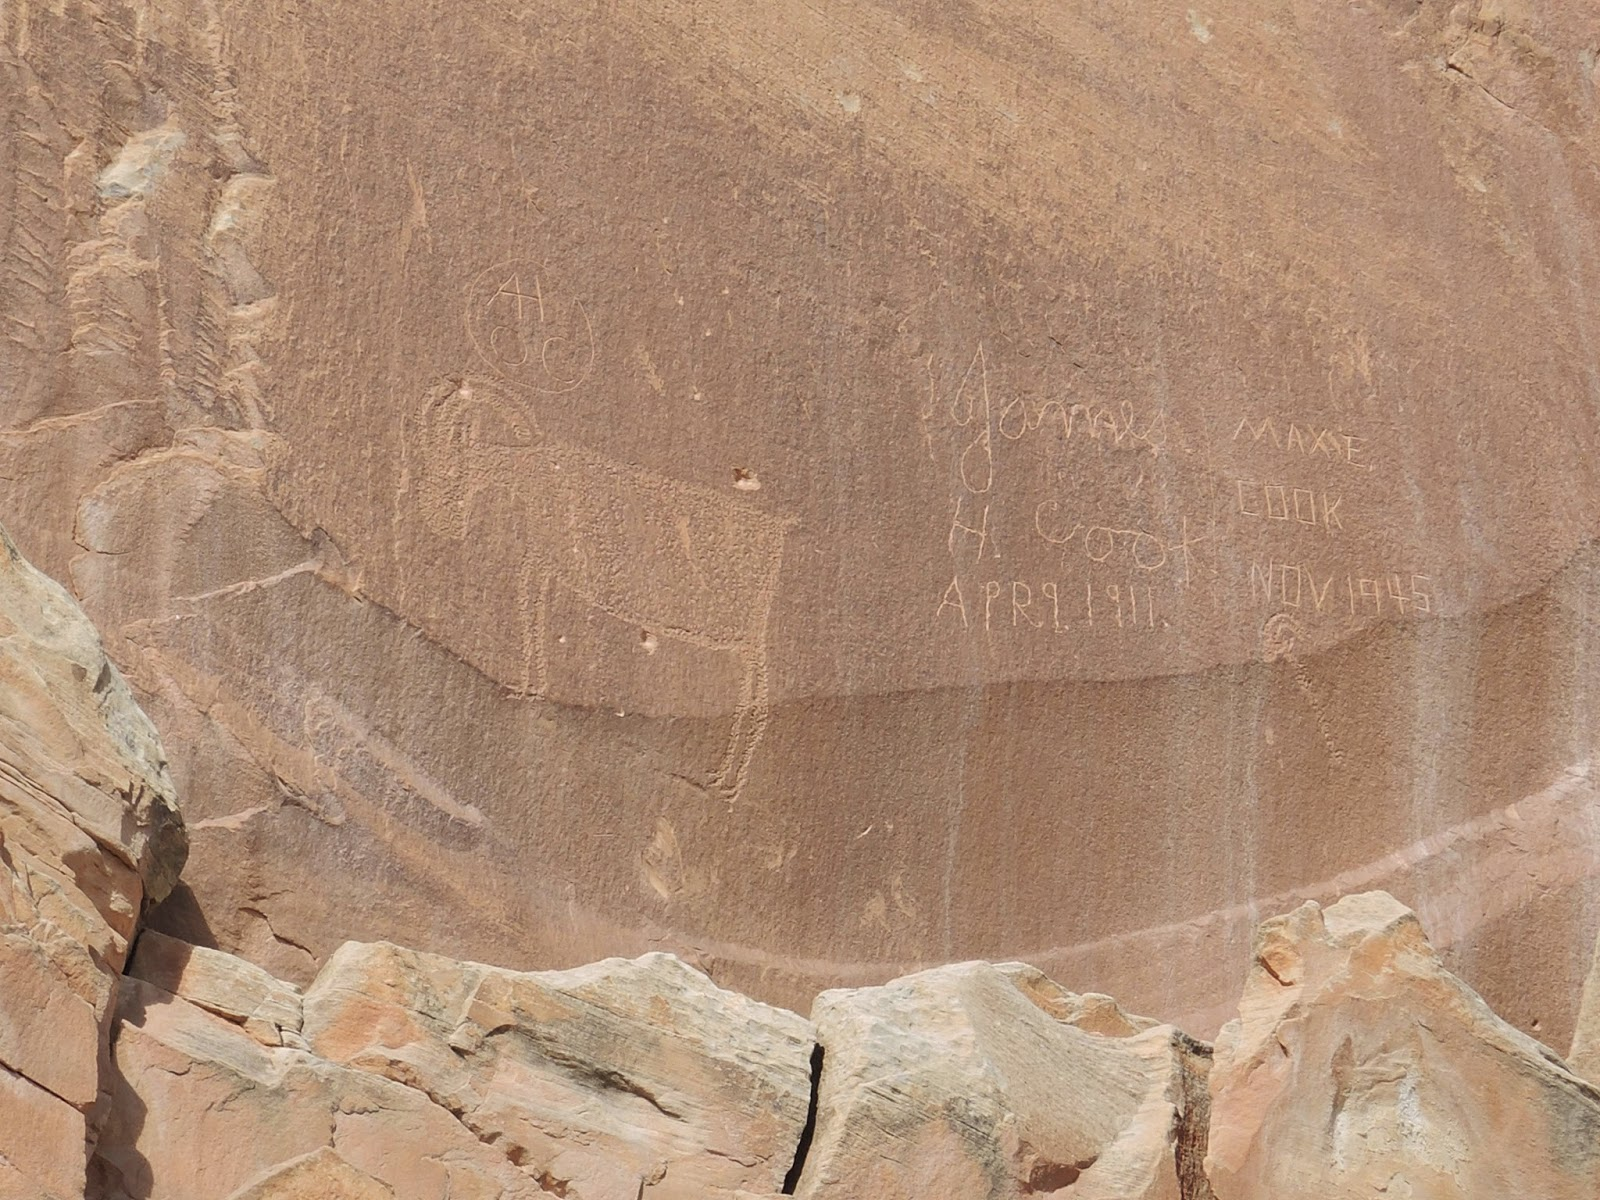 Capitol Reef National Park 15